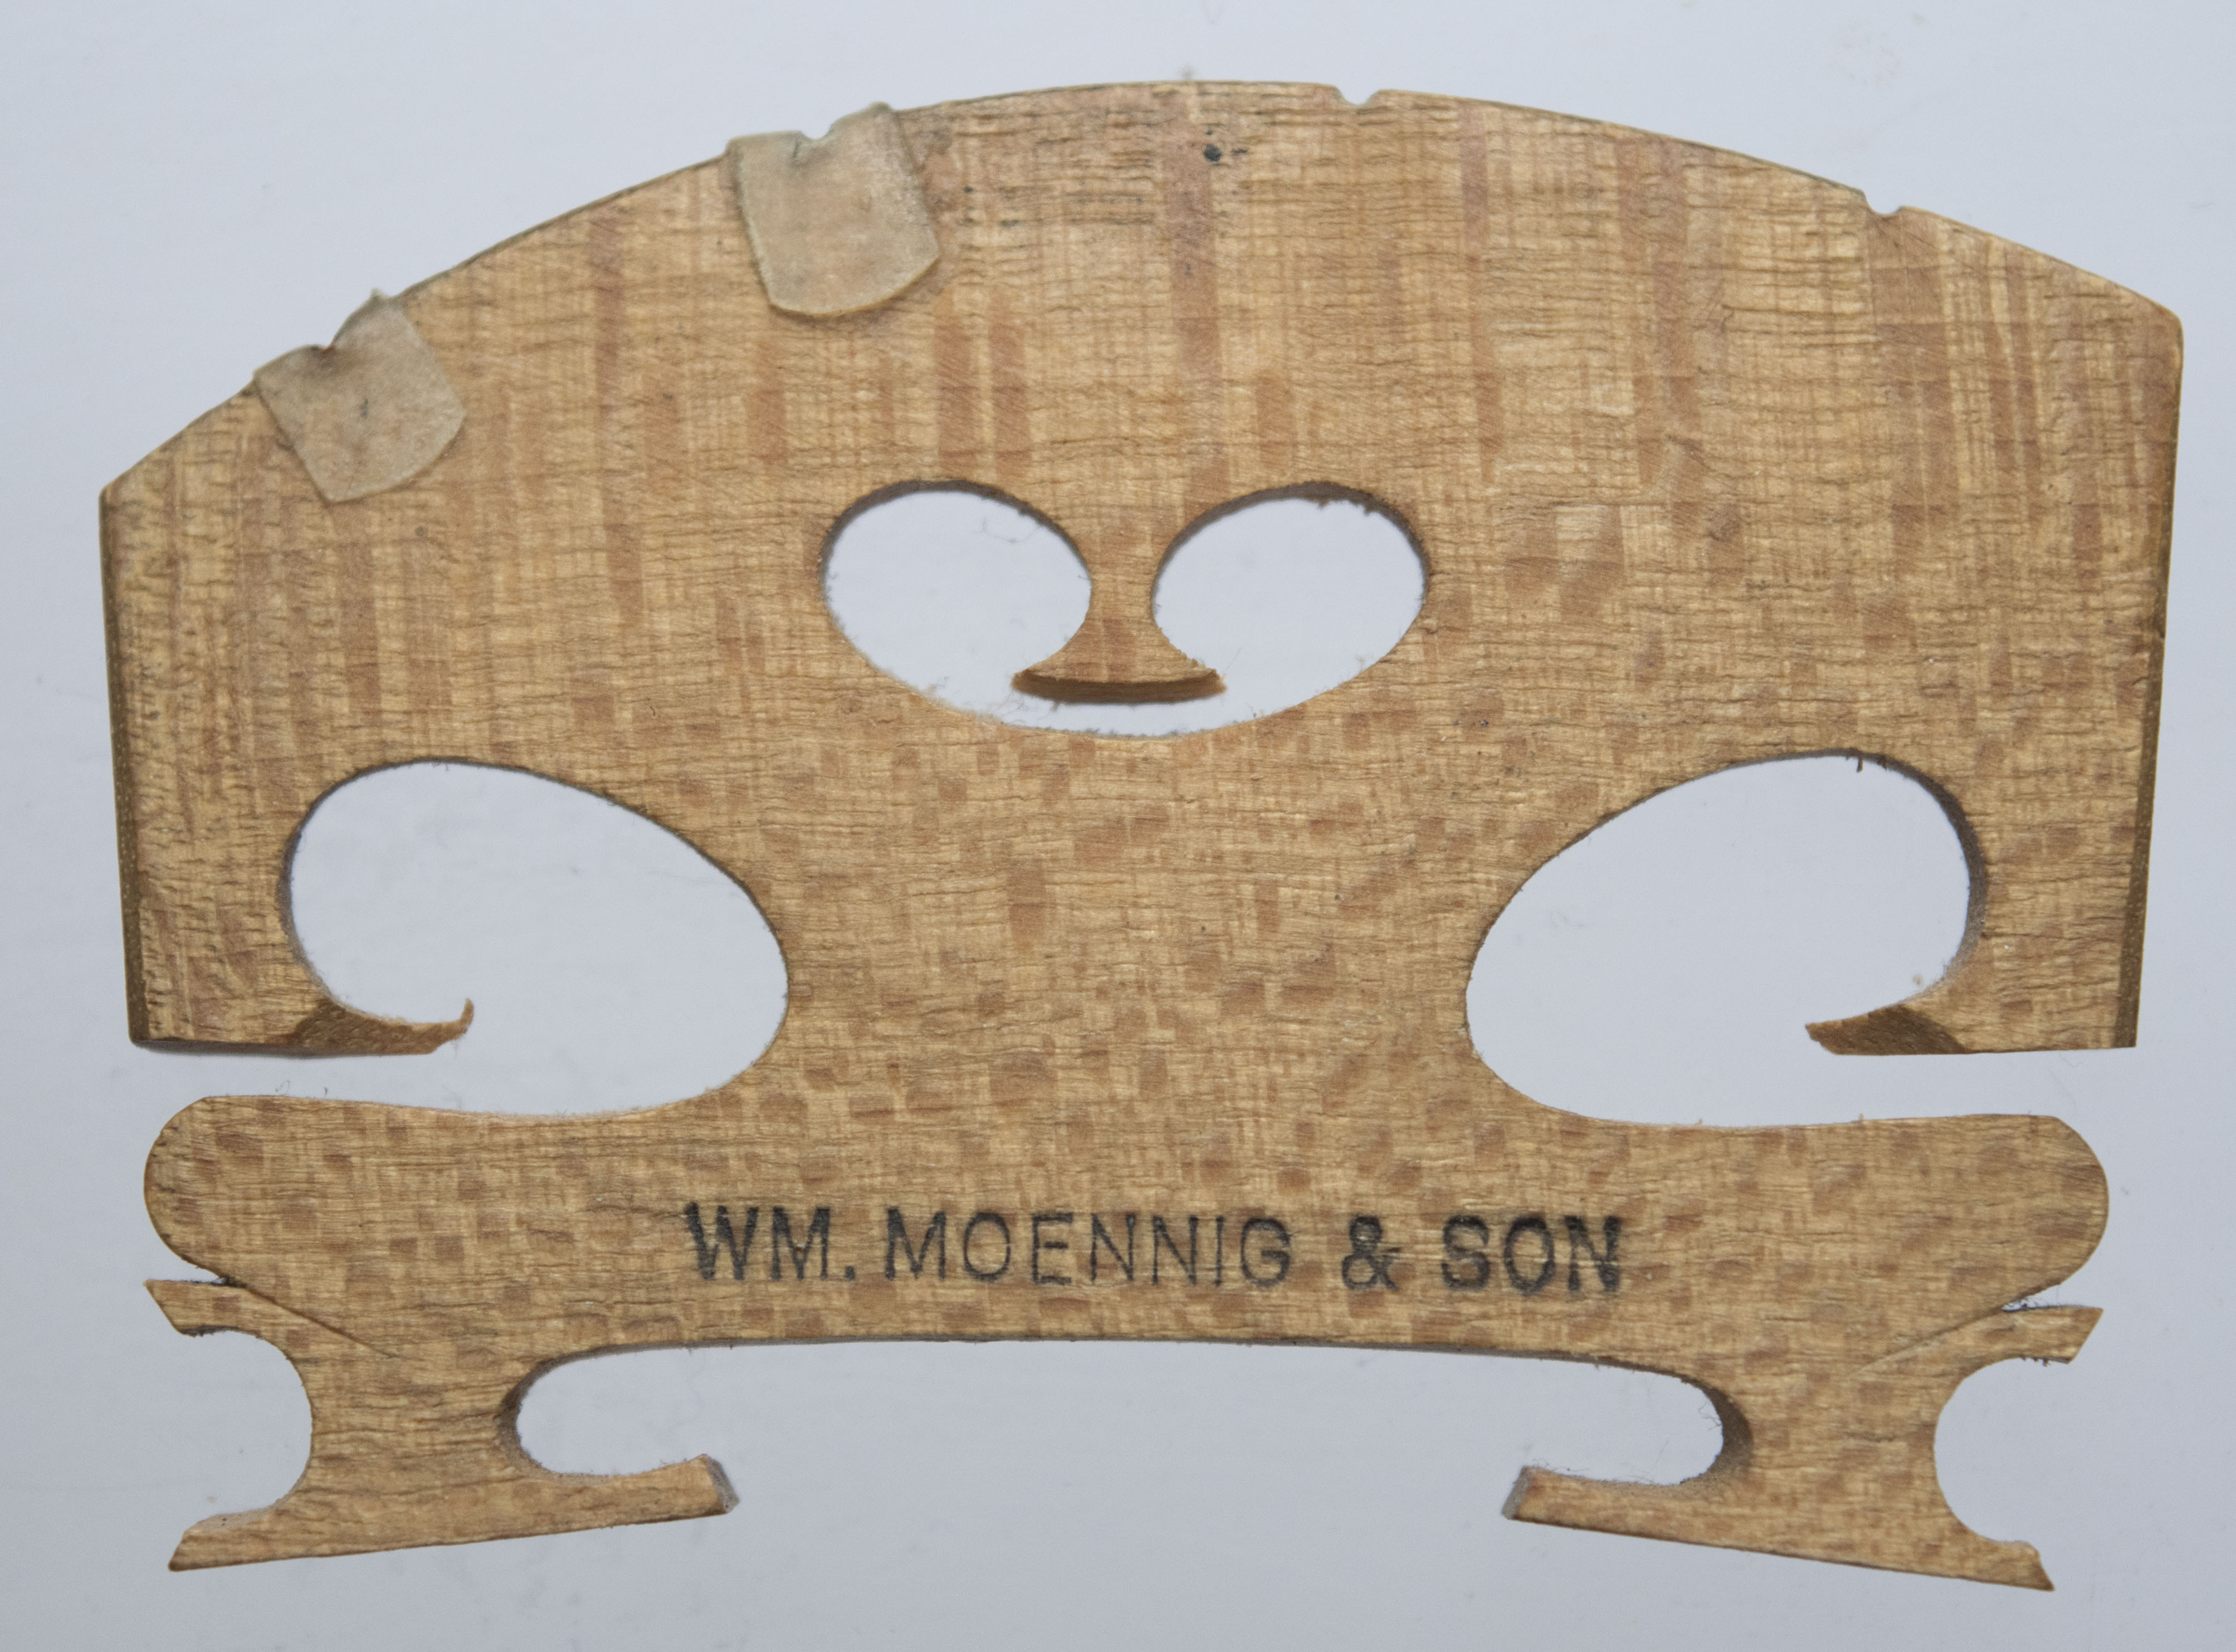 WM. MOENNIG & SON